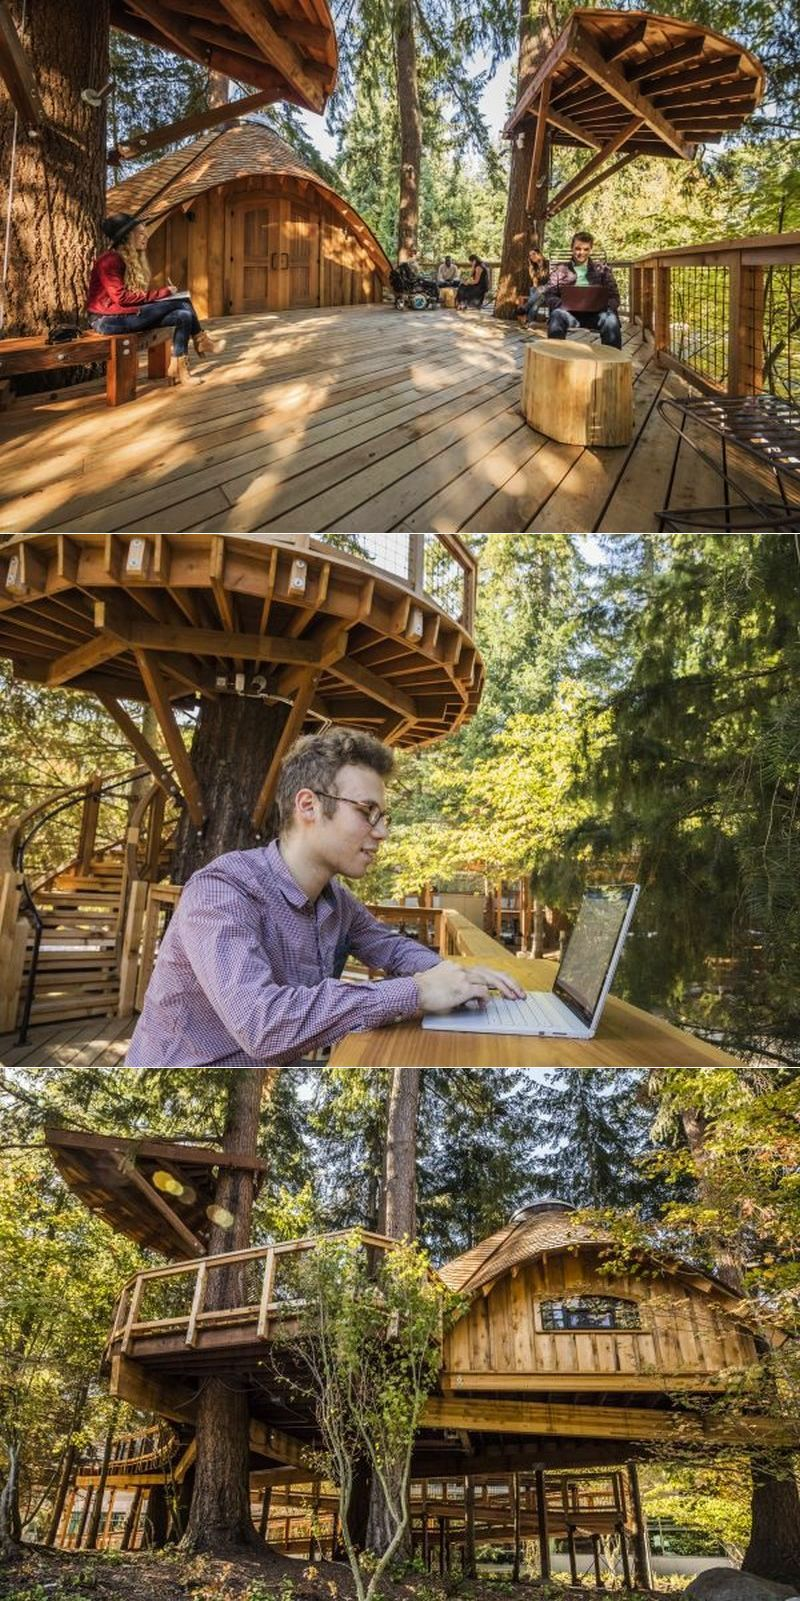 Microsoft builds technology-enabled treehouse workspaces for its employees  #treehouse #treehousehotel #treehouseresort #getaway